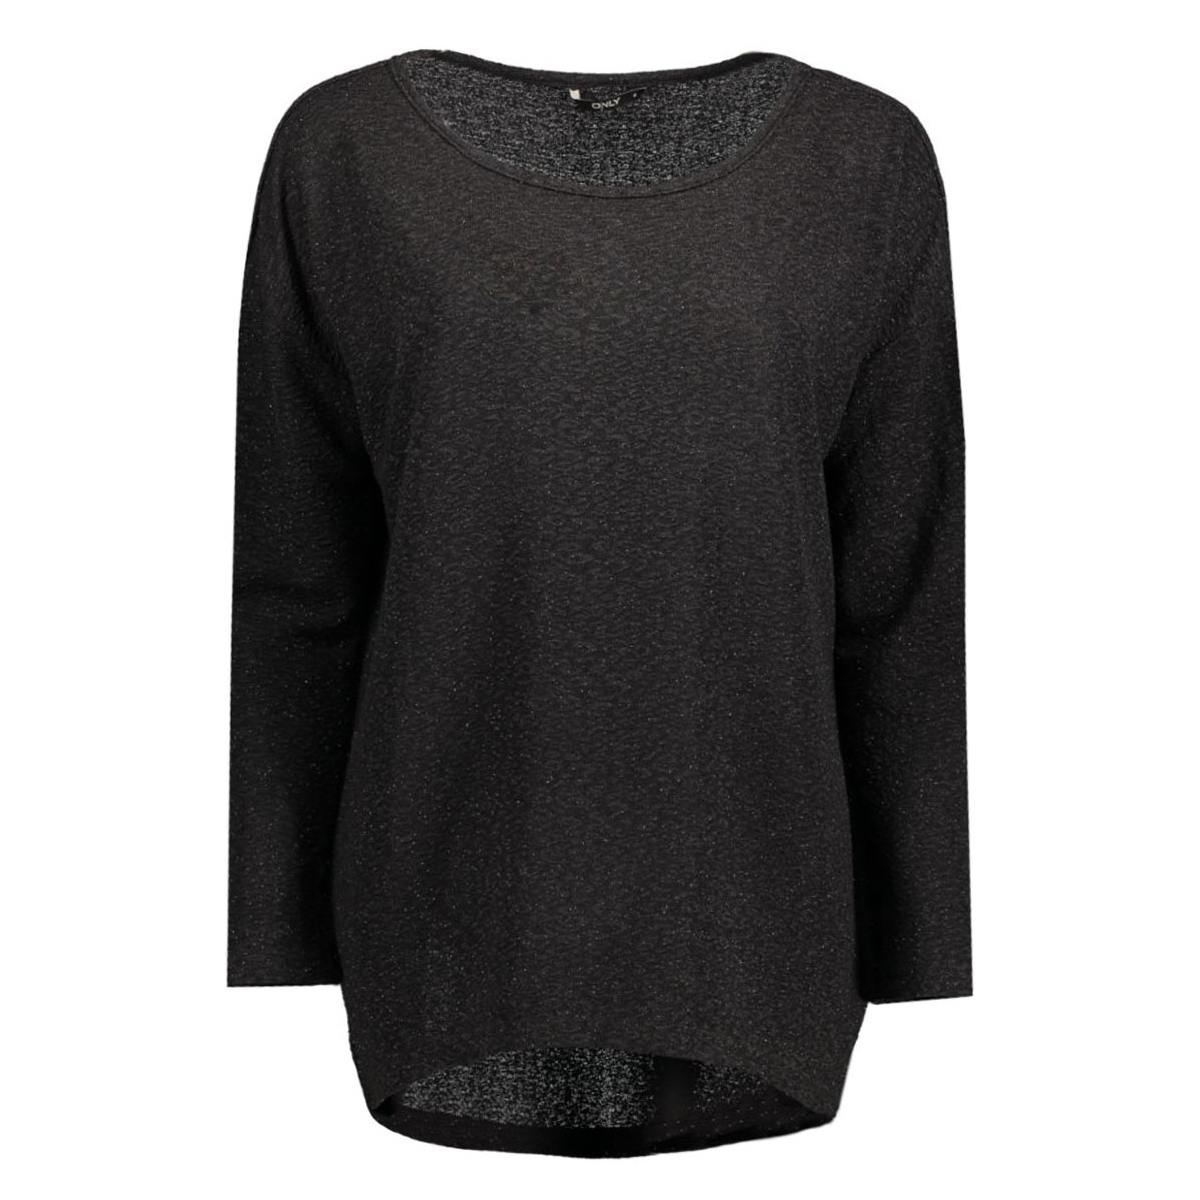 onlroxin elcos l/s top jrs 15131622 only t-shirt black